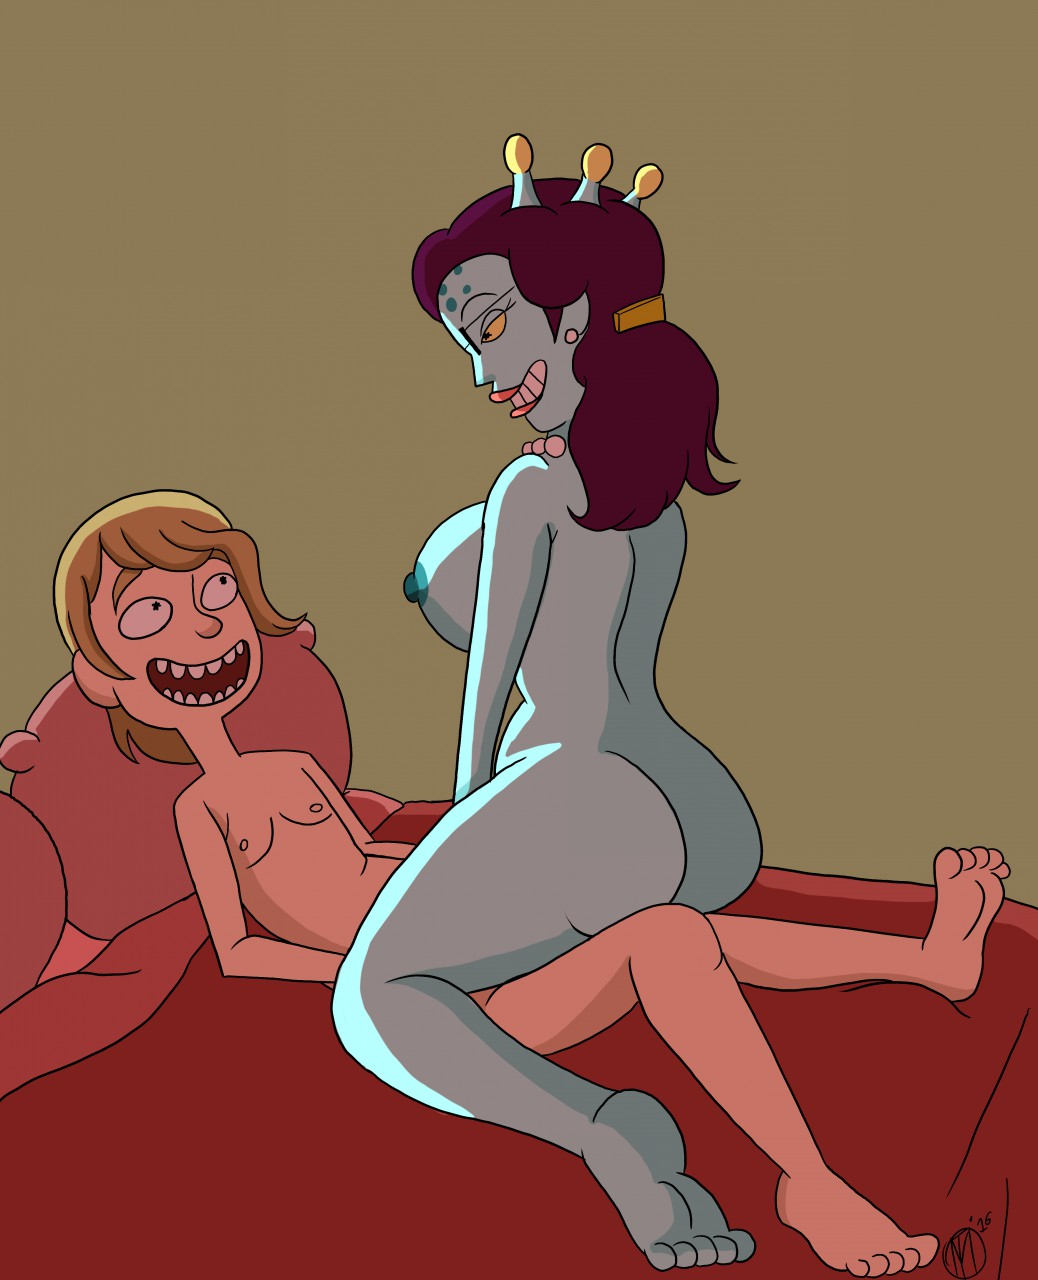 and of morty season index rick 1 Five nights at freddy's chica naked